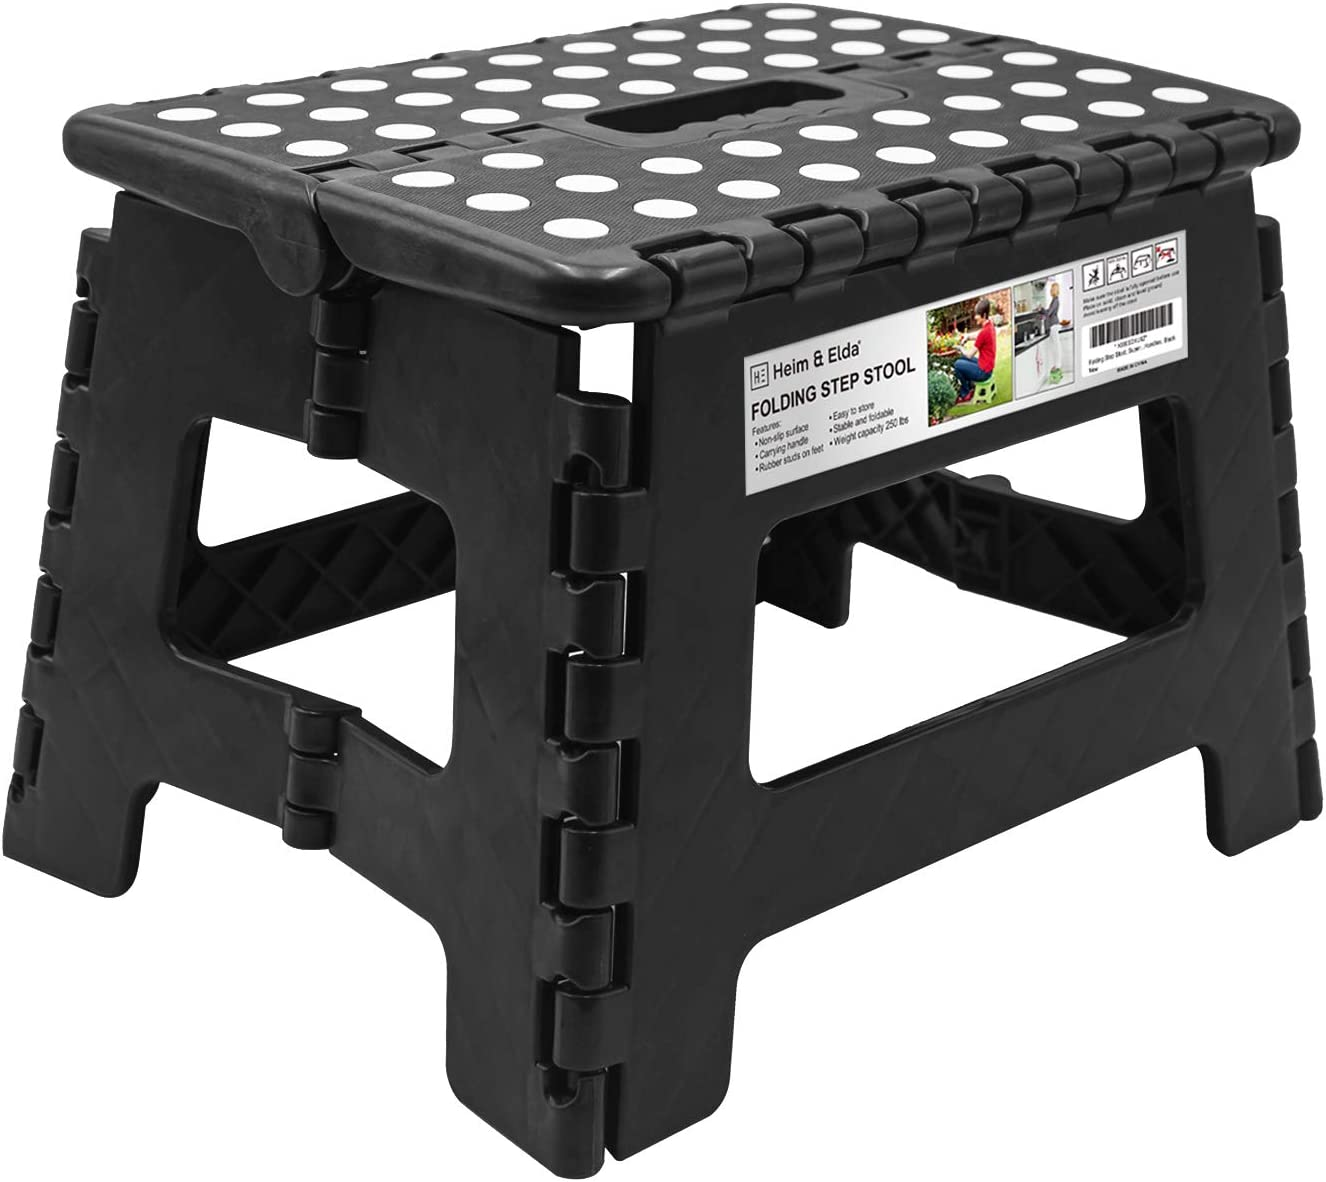 Folding Step Stool 9 Inch Height Foldable Stool For Kids Adults Kitchen Garden Bathroom Collapsible Stepping Stool Black Amazon Co Uk Kitchen Home